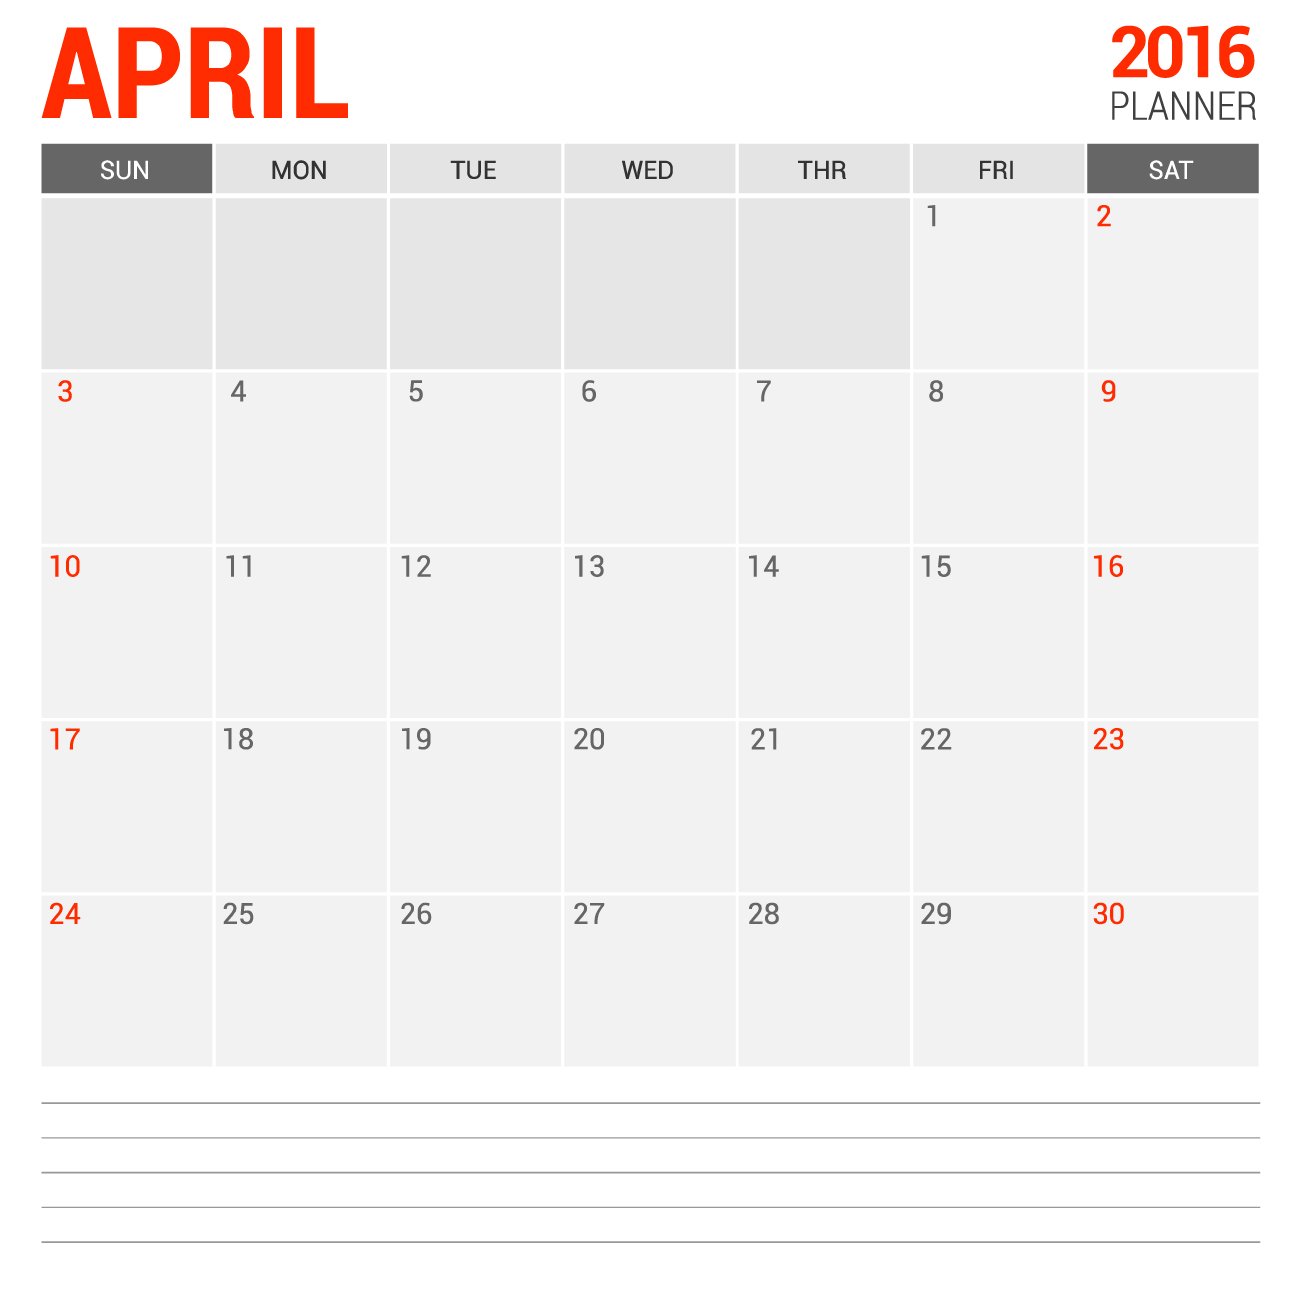 Printable blank calendar for April 2016 with notes